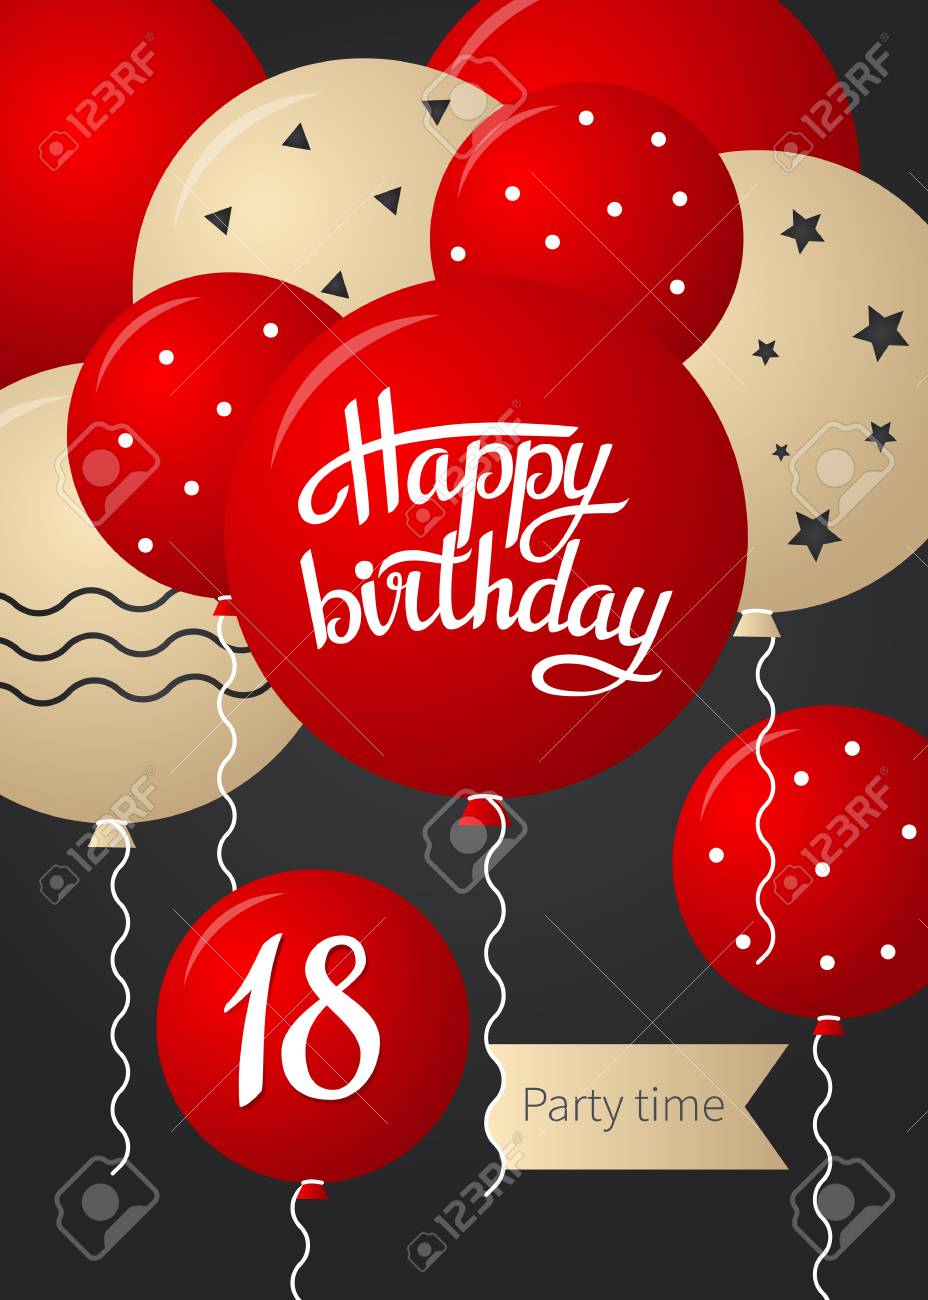 Happy Birthday Card Template With Balloons 18 Years Vector Illustration Stock